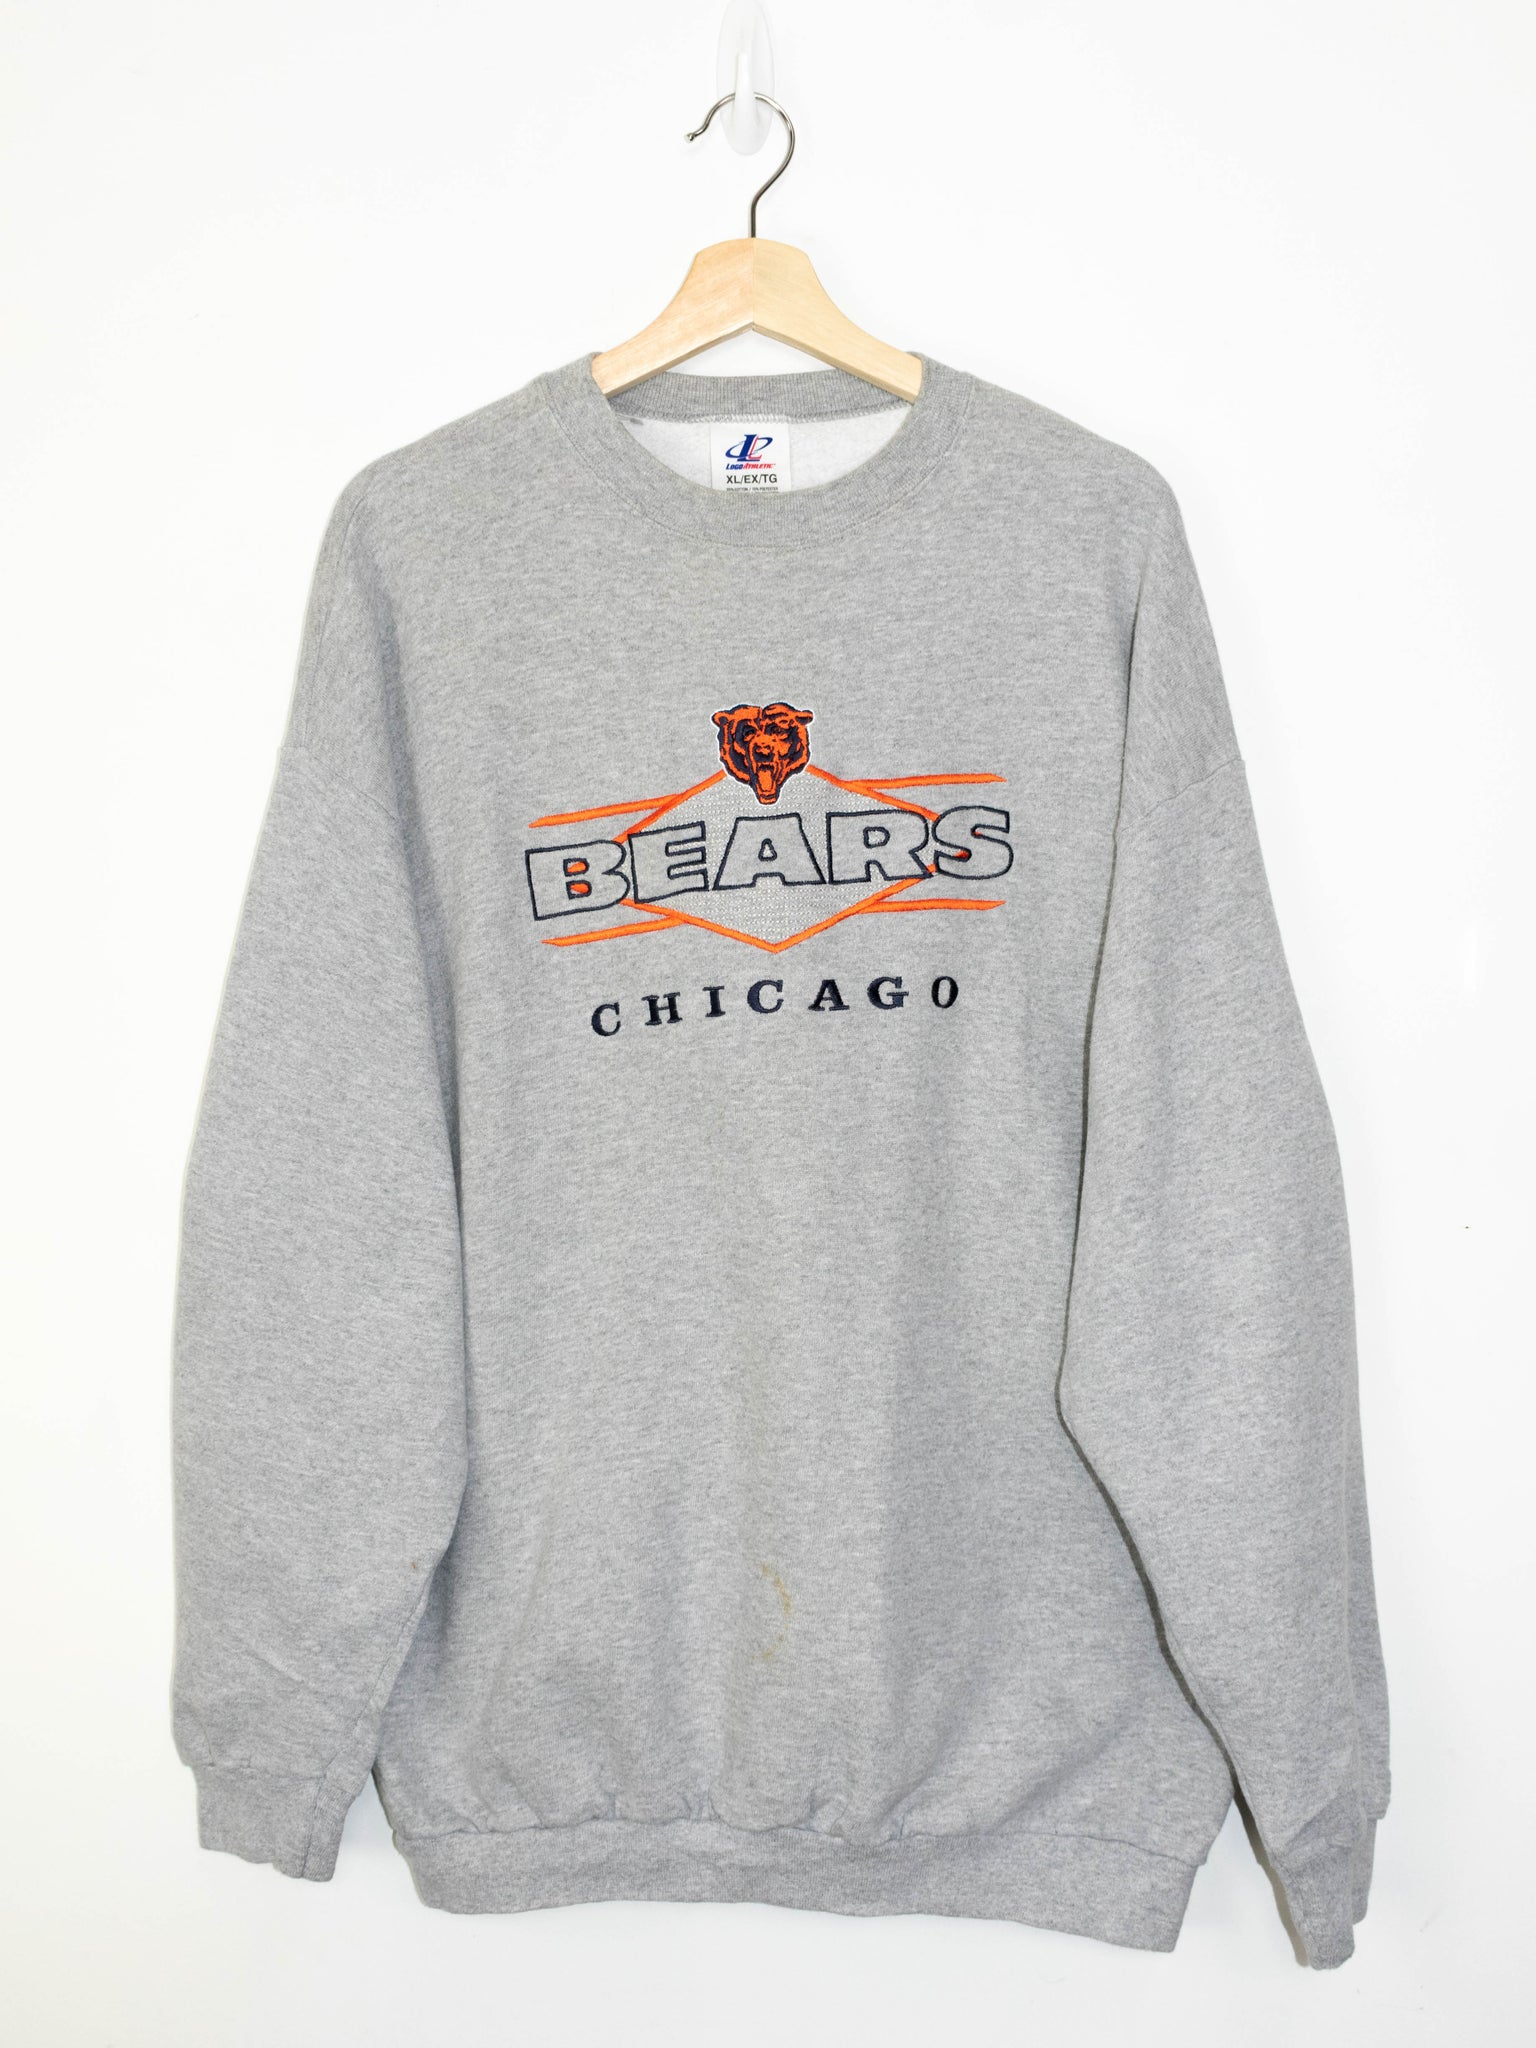 Vintage Chicago Bears sweater size: XL